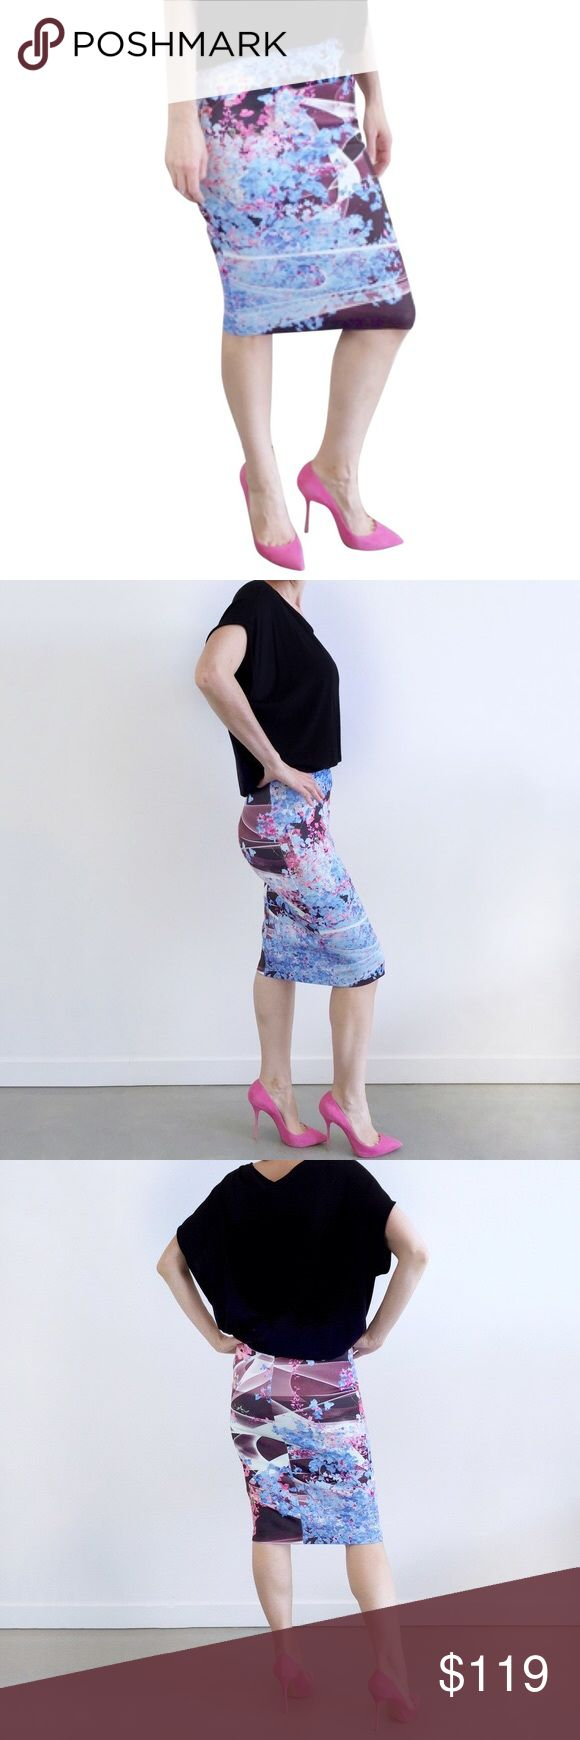 """clover canyon • cherry blossom scuba pencil skirt Romantic floral print on a form fitting neoprene pencil skirt. Wear with a crop top and heels for that nighttime vibe. 90% Polyester 10% Lycra.   • size medium  • 29"""" waist 